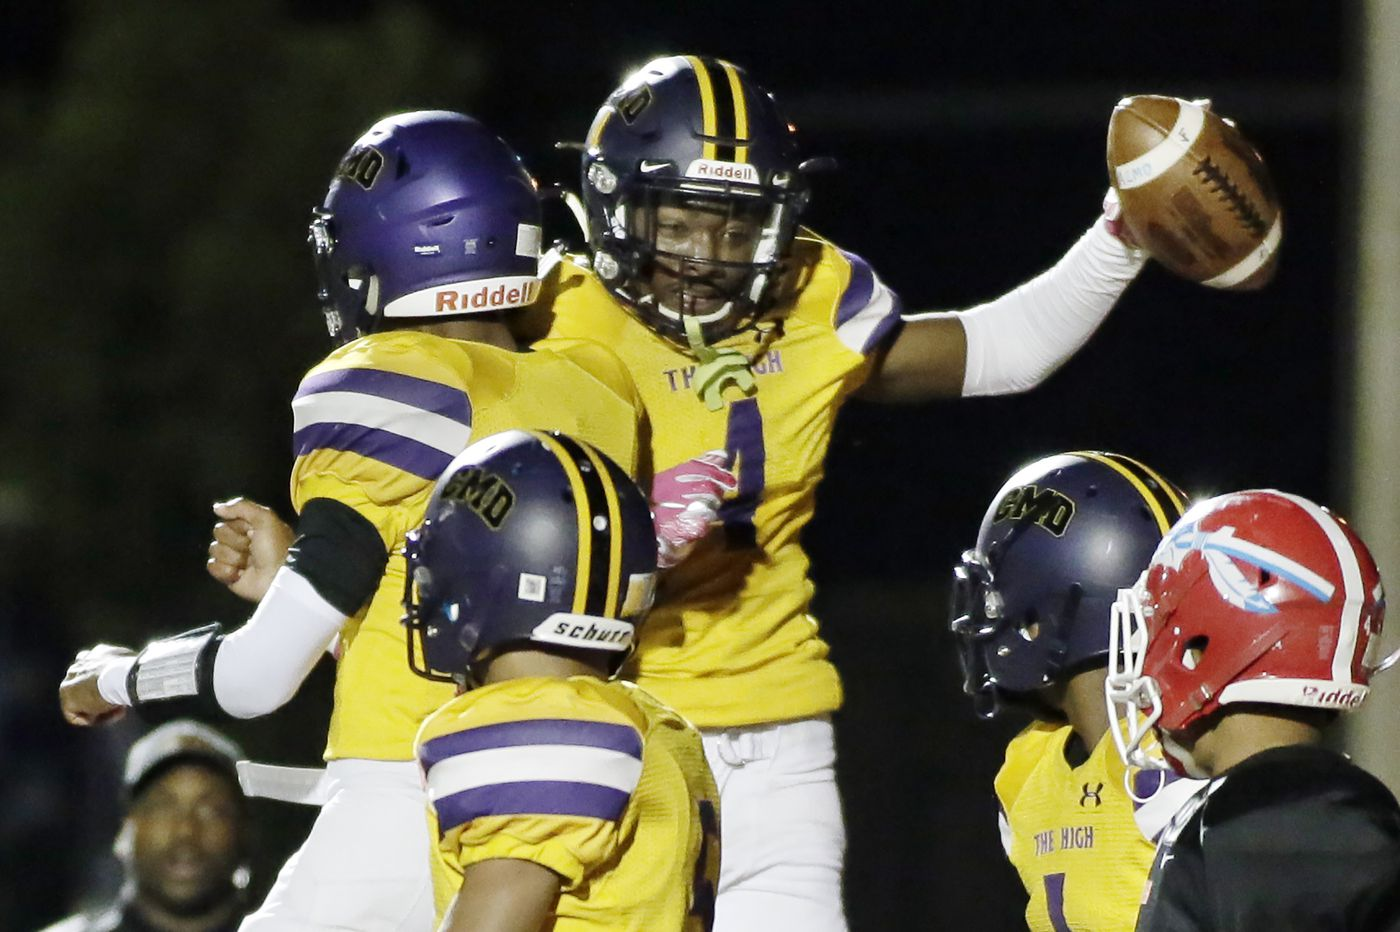 Camden football star JaJuan Hudson's long road to Bowling Green scholarship